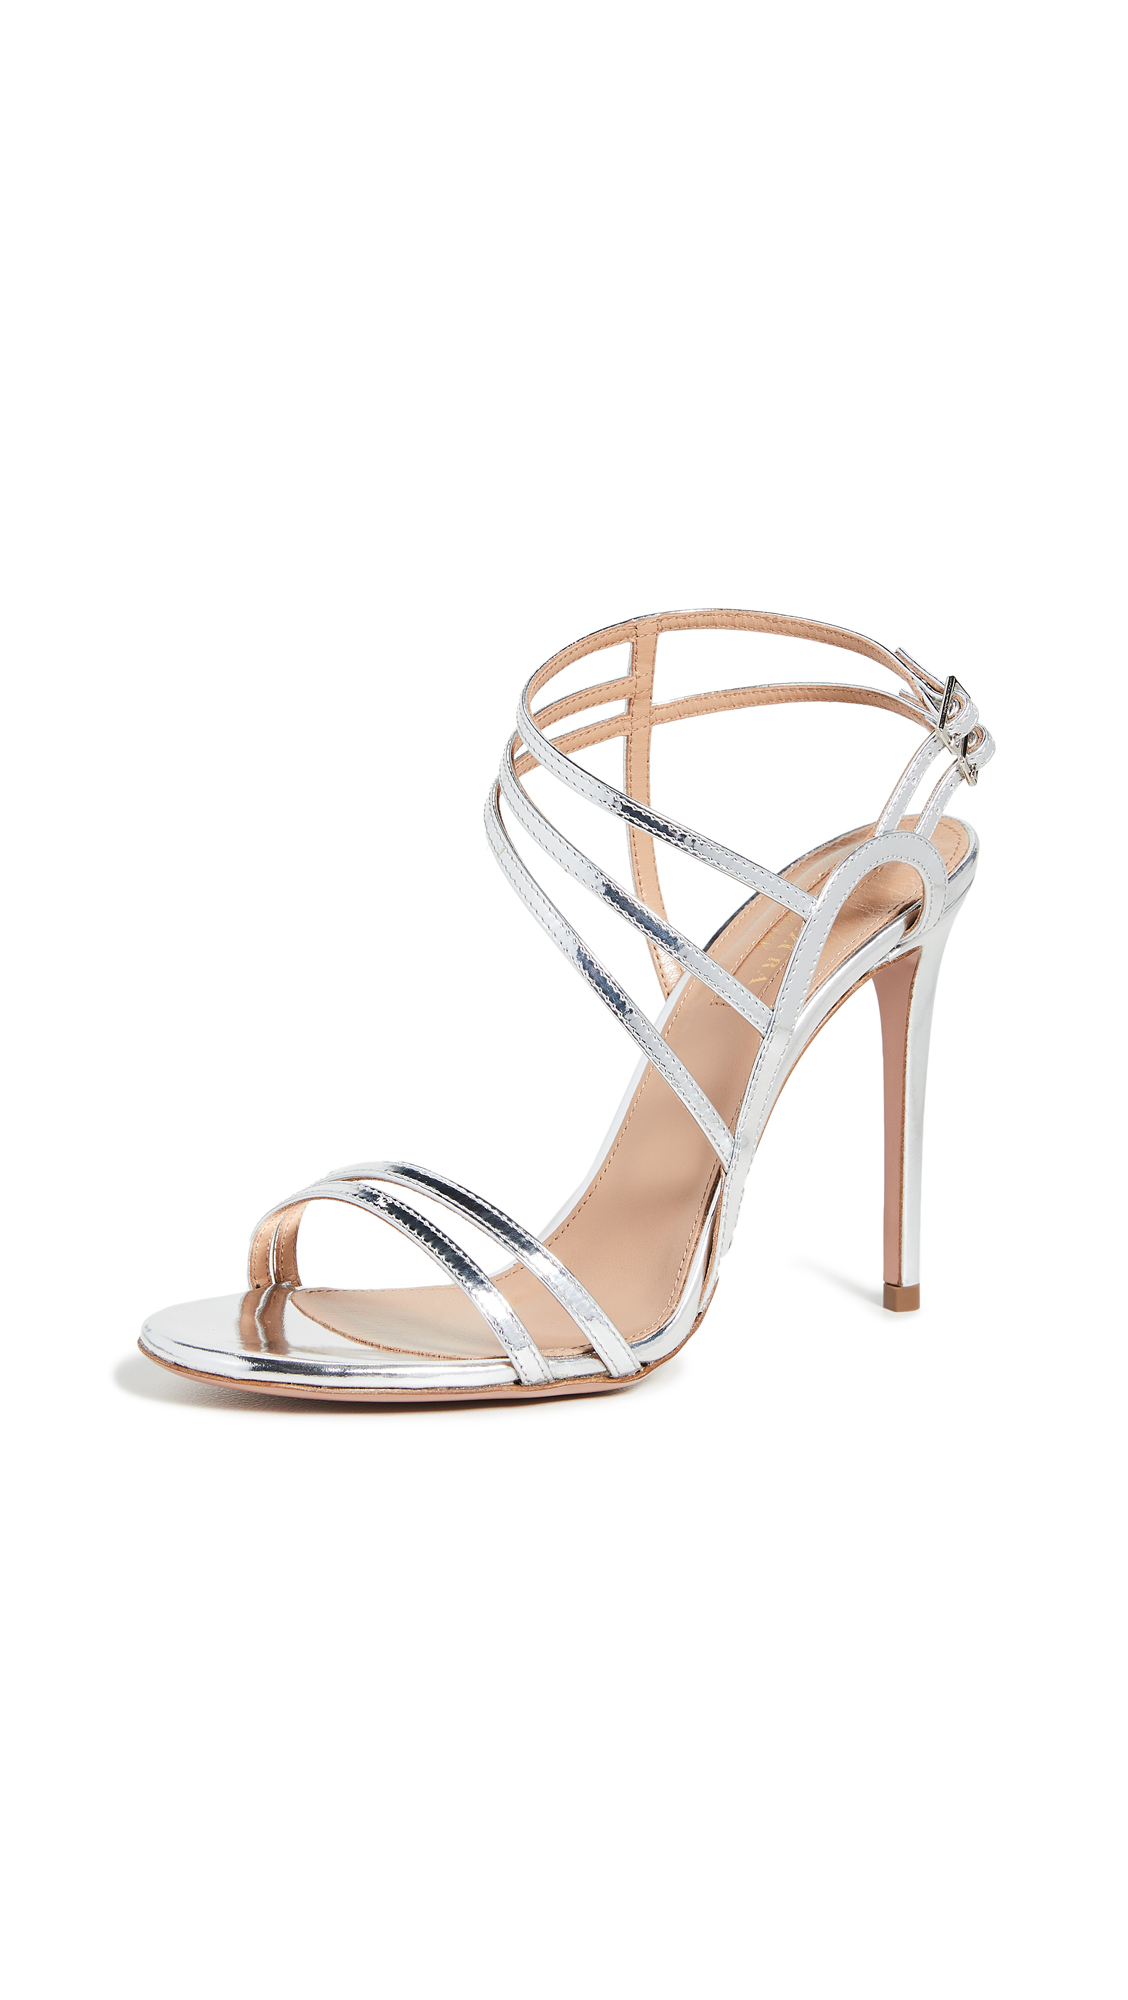 Buy Aquazzura online - photo of Aquazzura Spicy Sandals 105mm